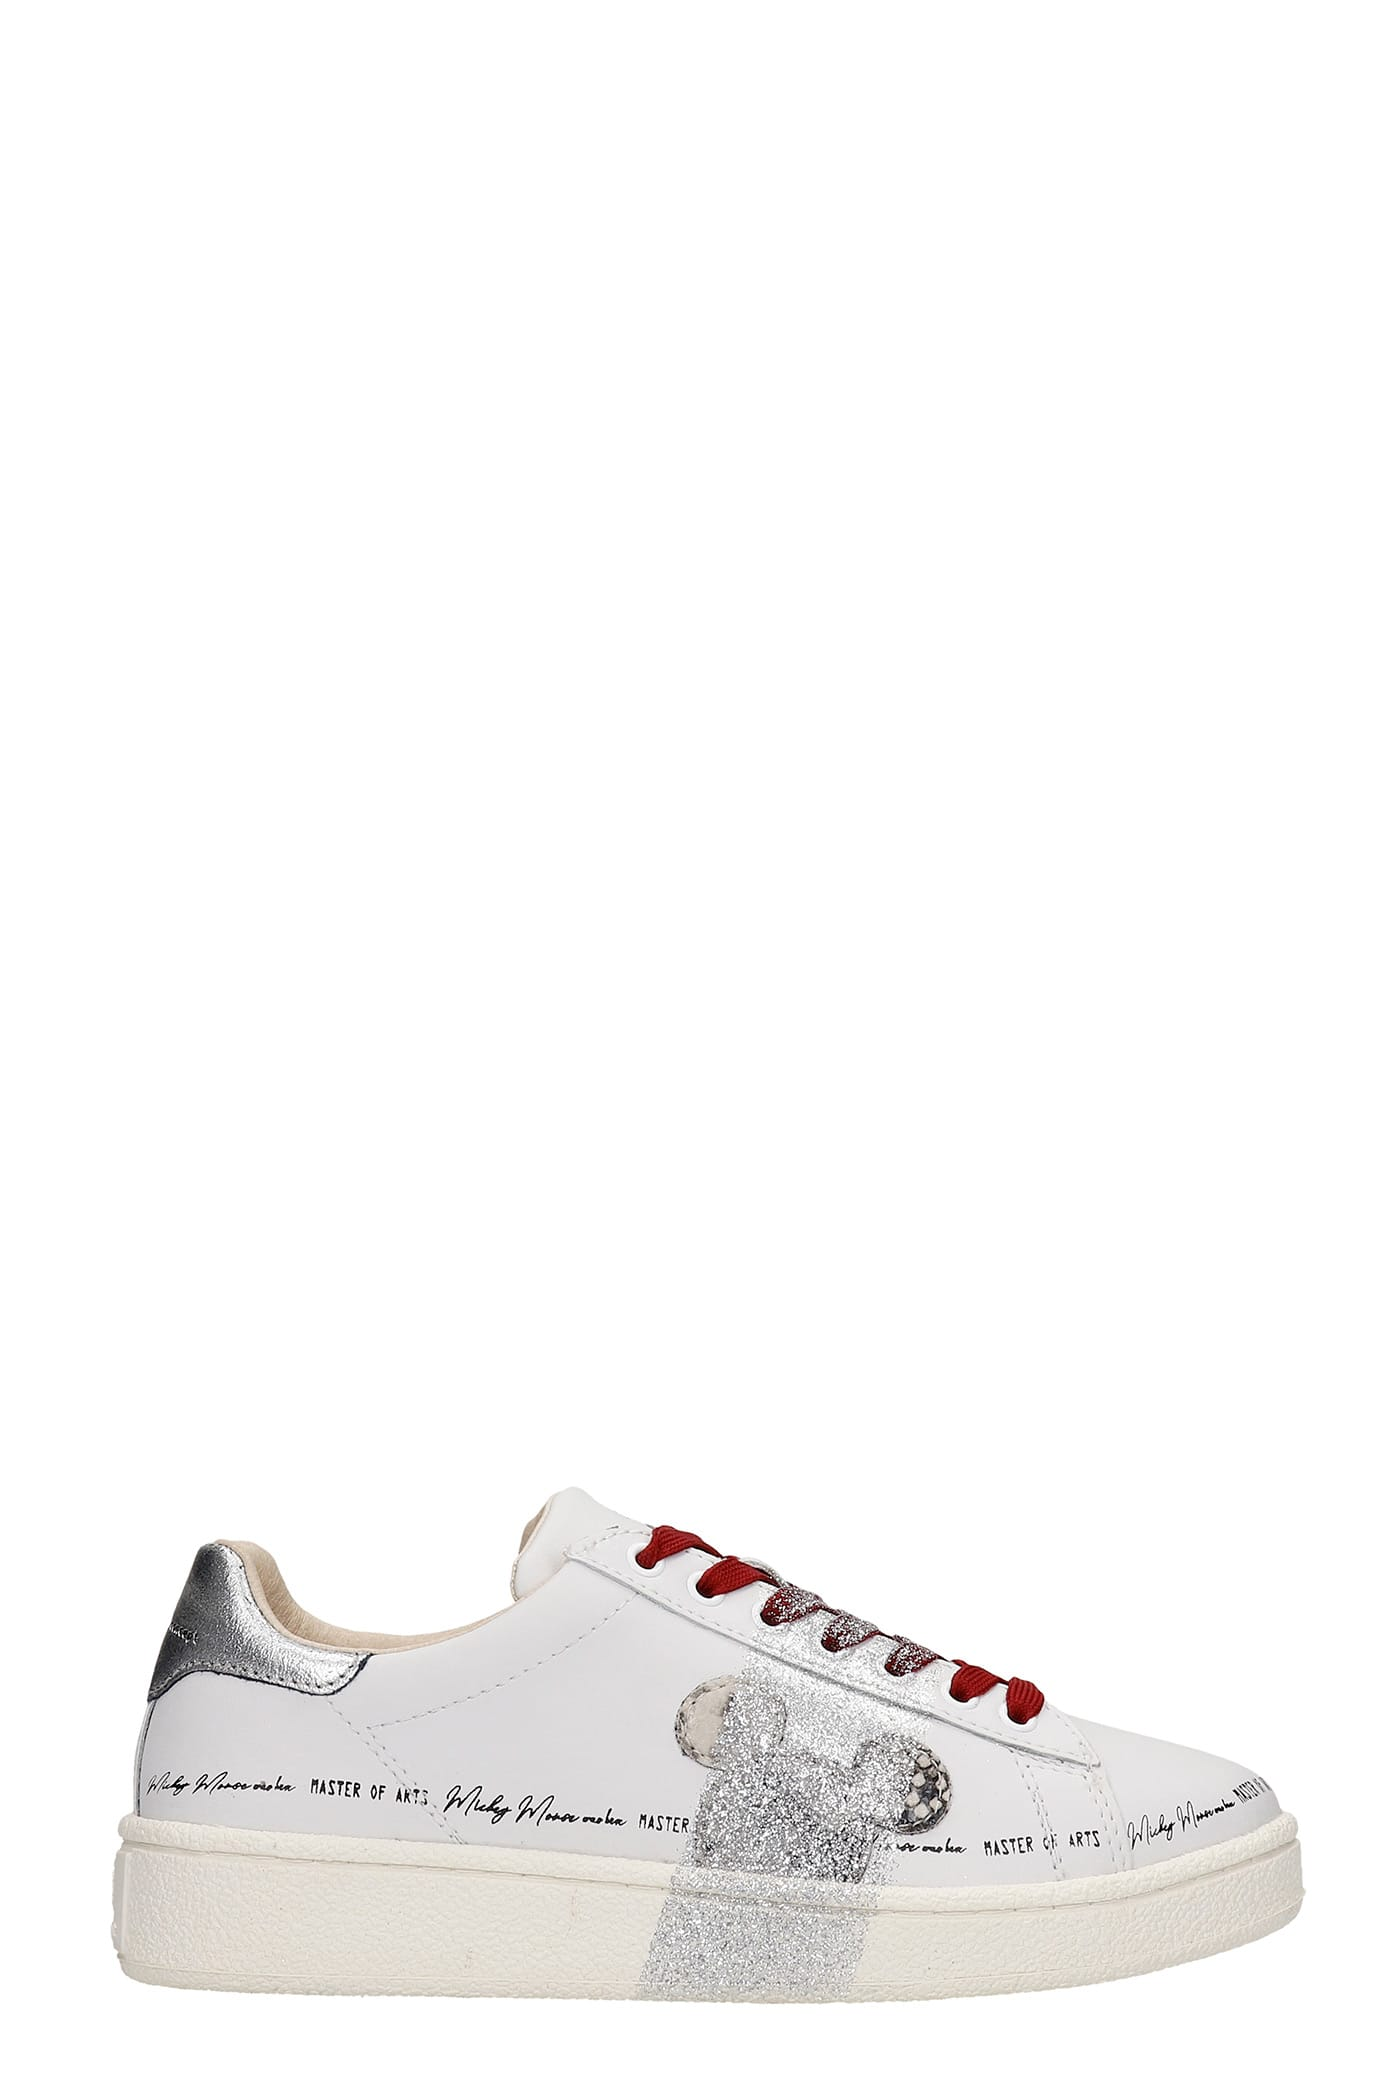 Moa Master Of Arts SNEAKERS IN WHITE LEATHER